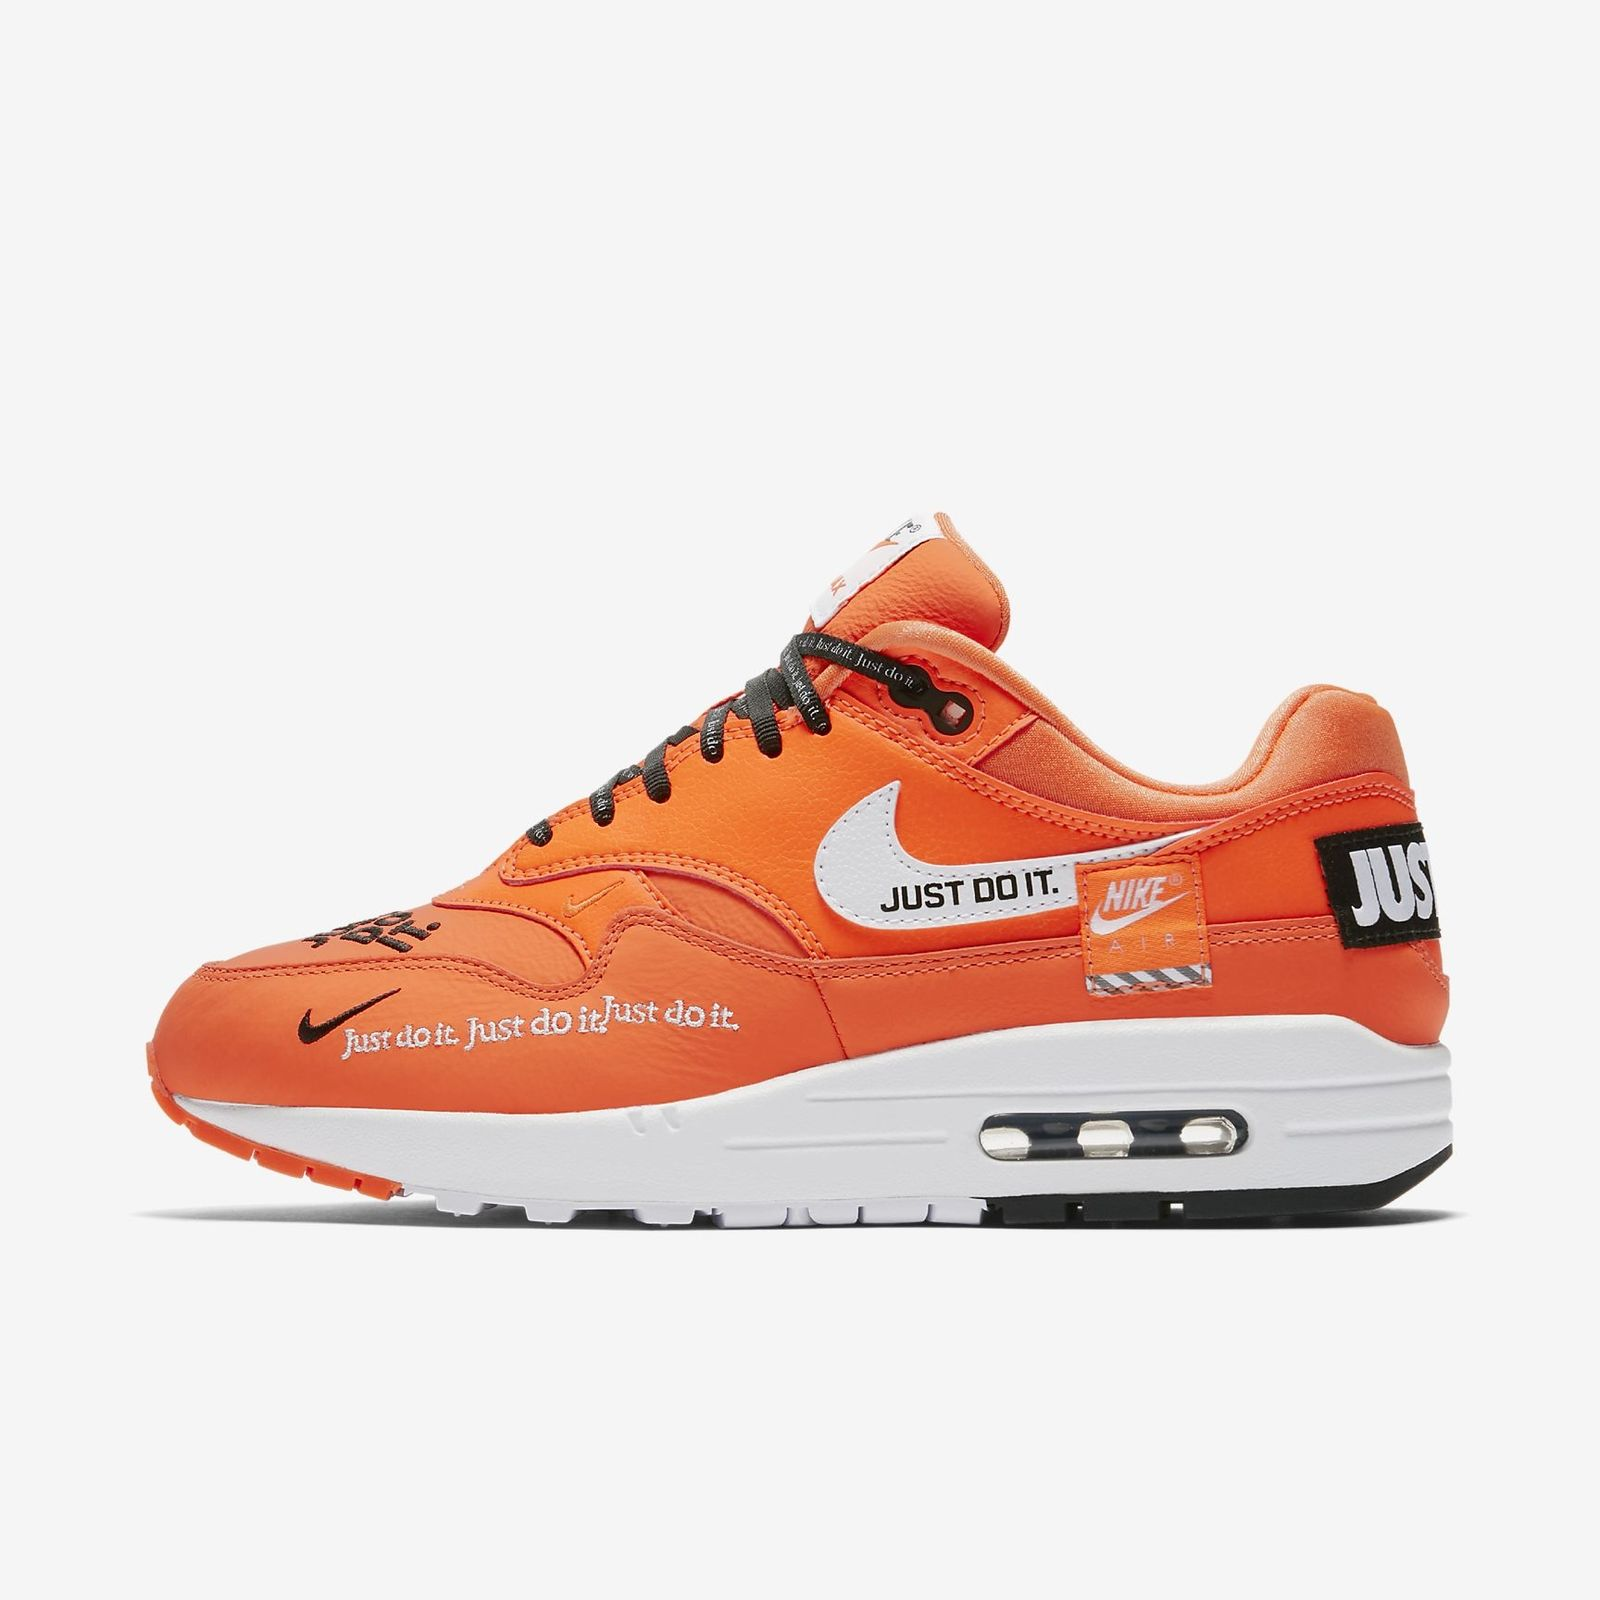 best website 7697e 41168 Details about NIKE AIR MAX 1 LX JUST DO IT 917691-800 TOTAL ORANGE WHITE  BLACK JDI